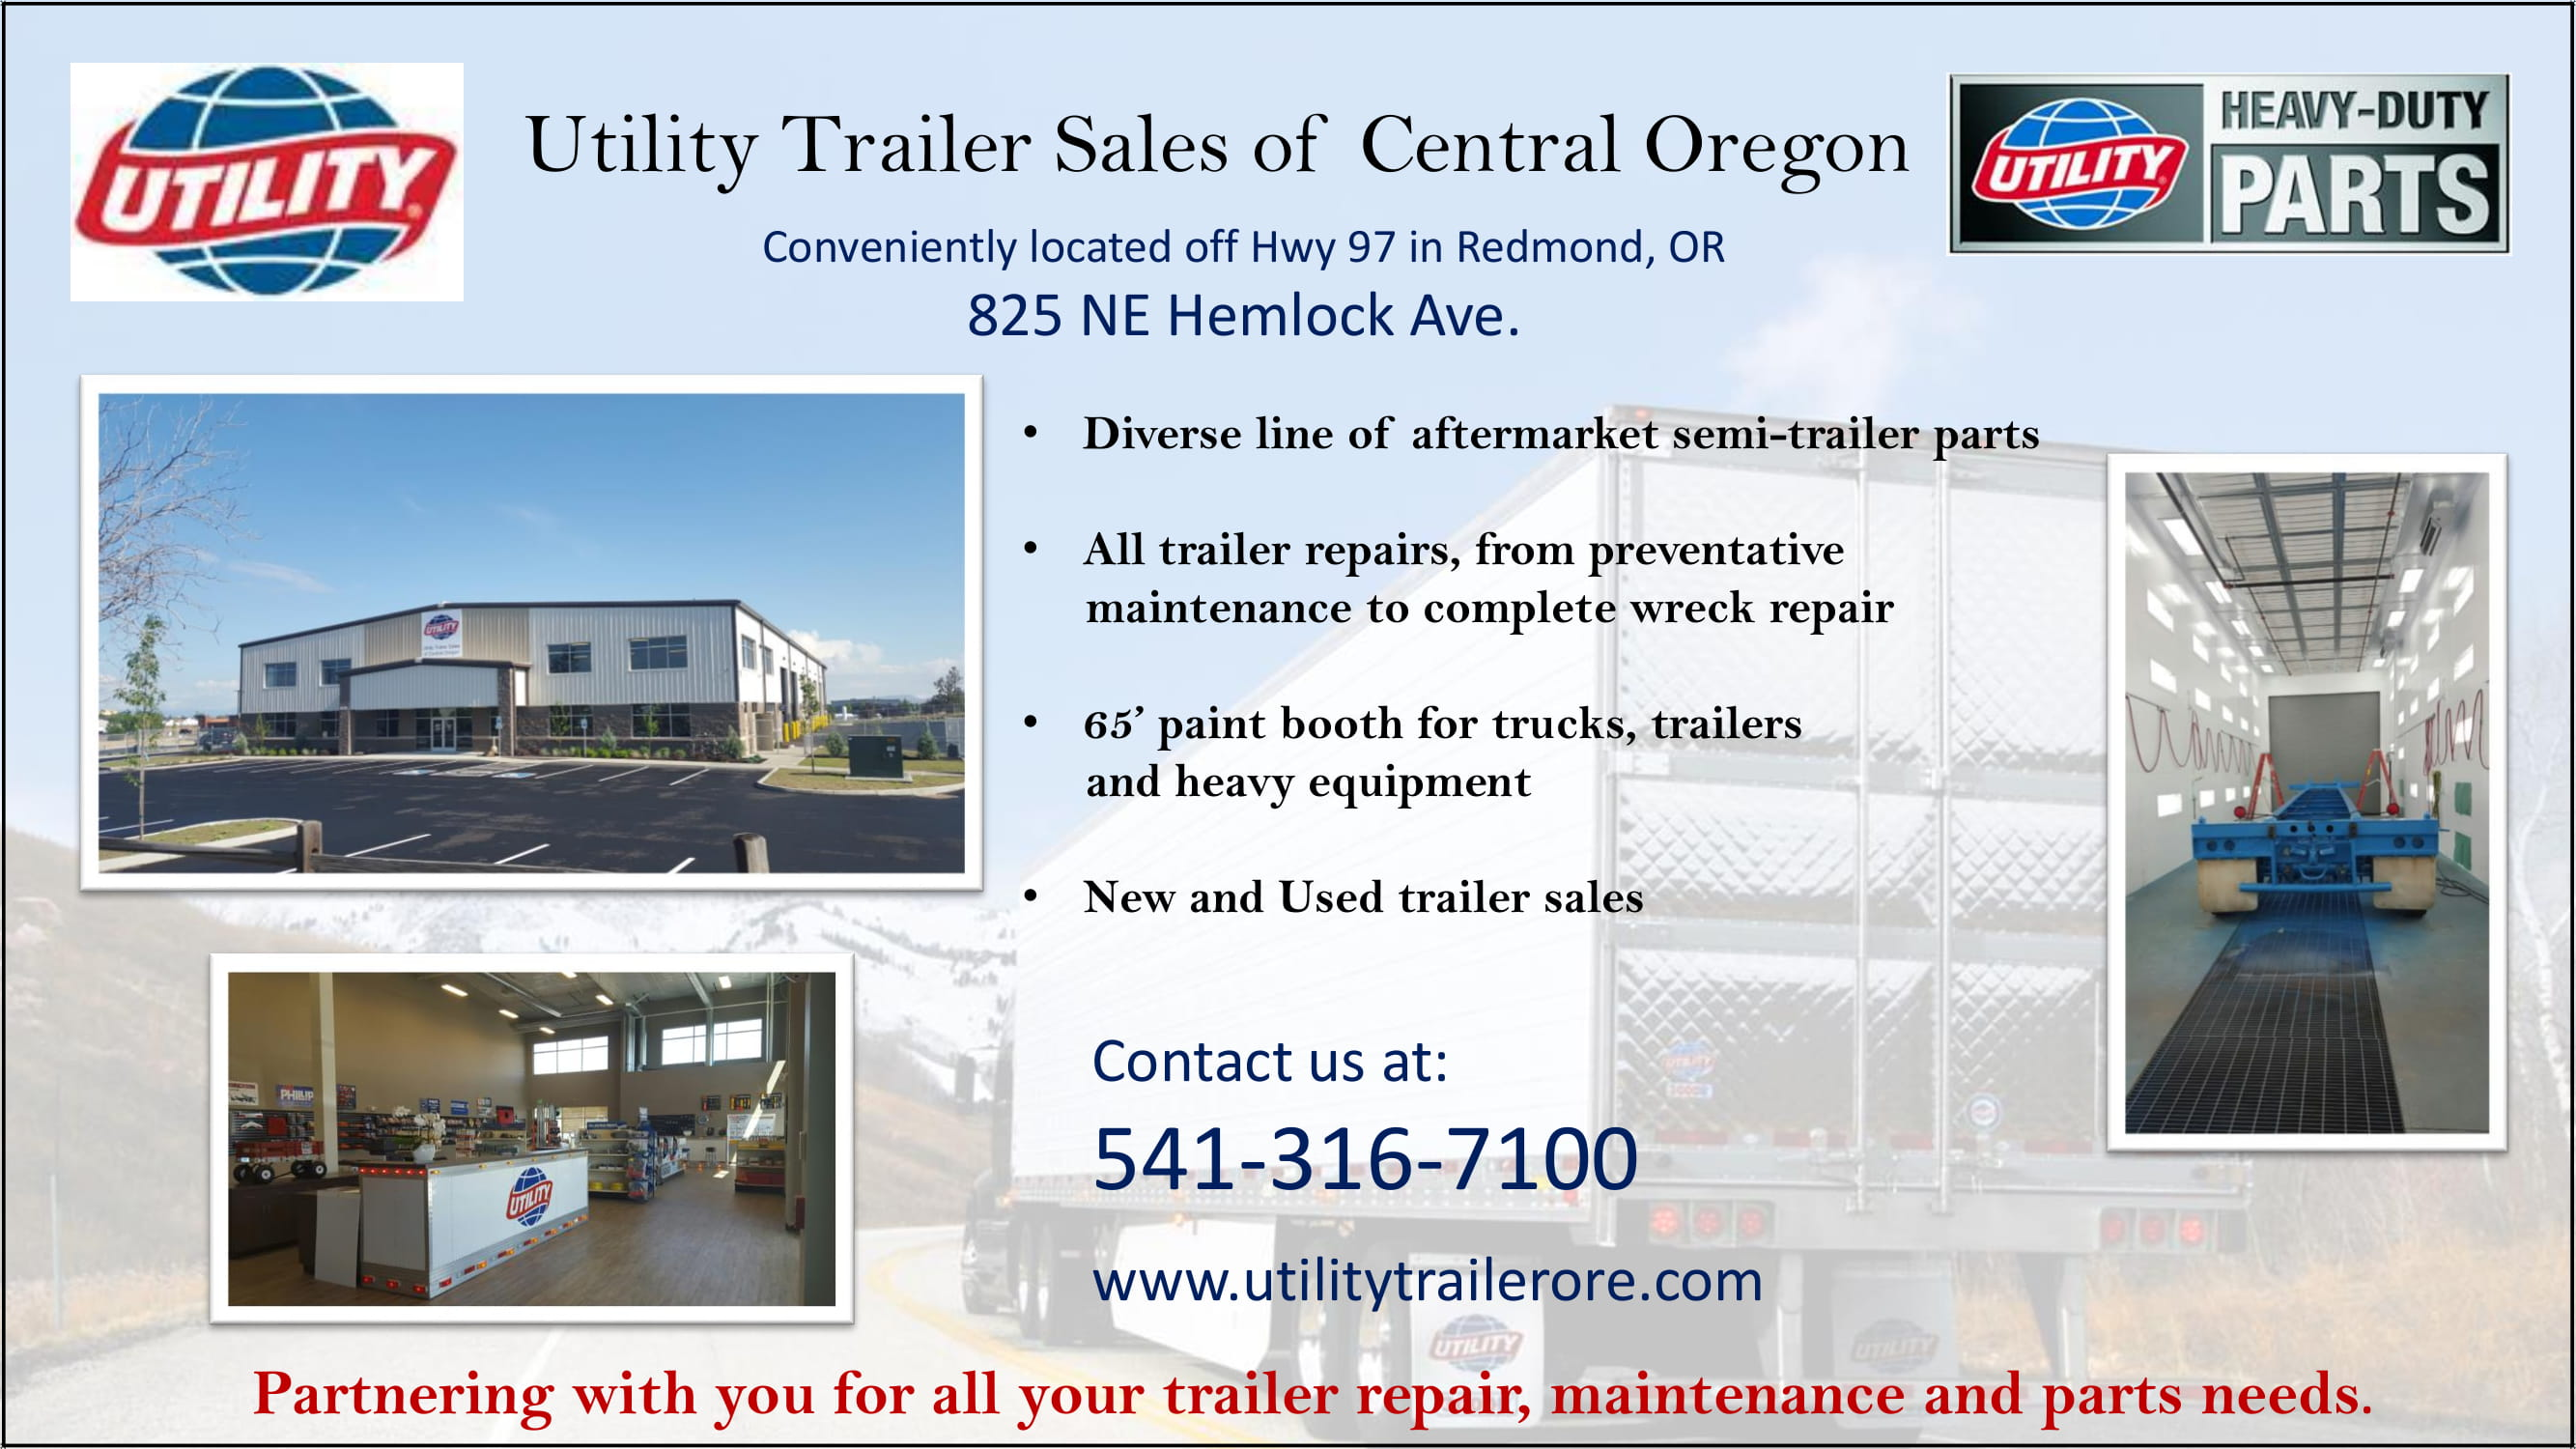 Our Redmond Location Will Meet All Your Semi-Trailer Needs